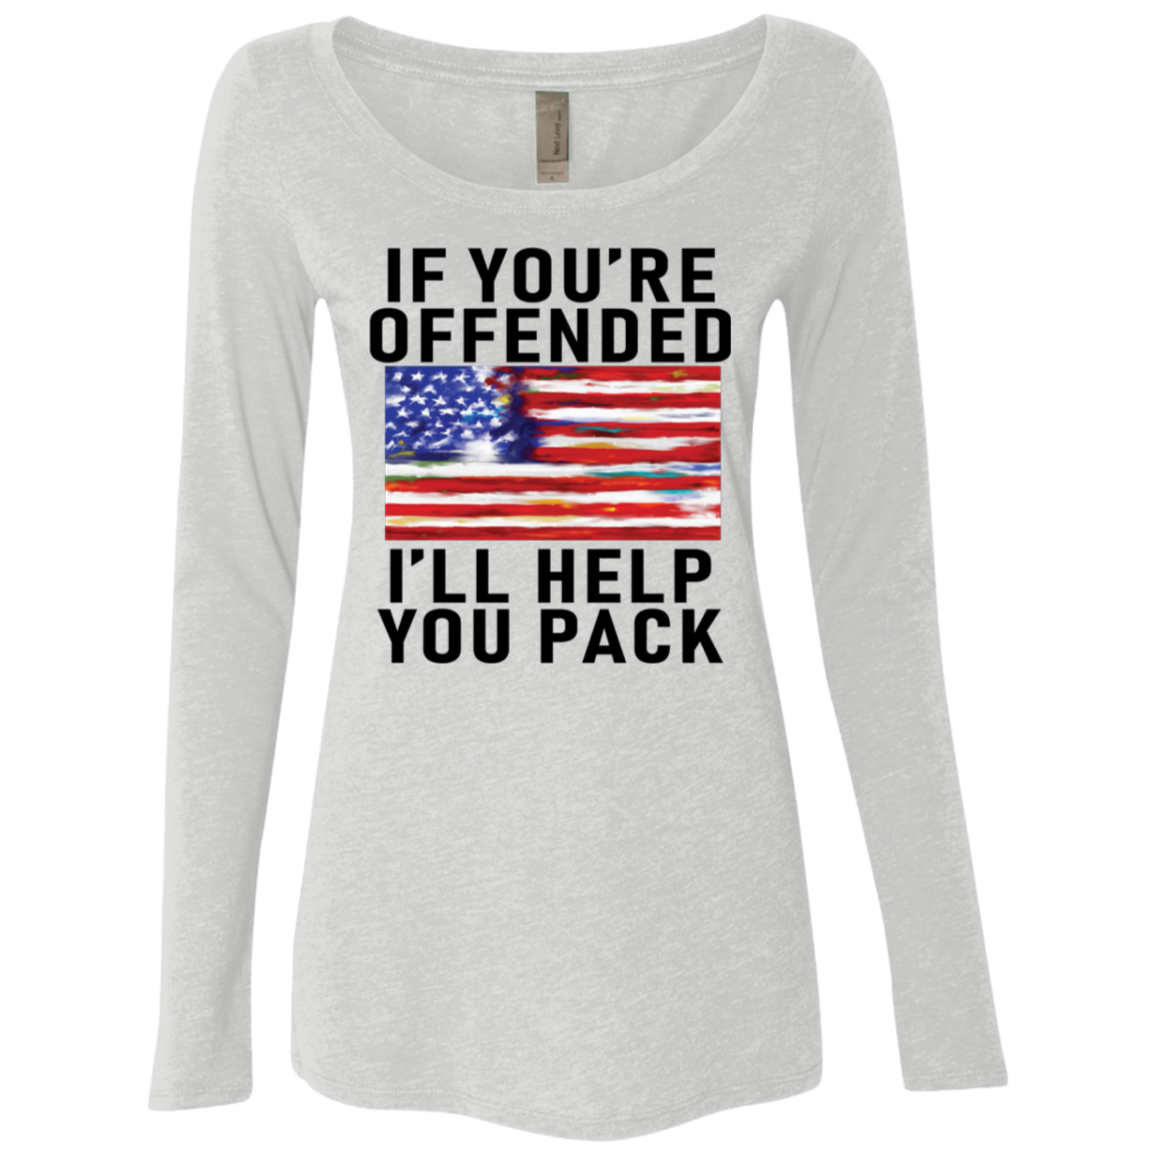 If You're Offended I'll Help You Pack Women's Long Sleeve Tee